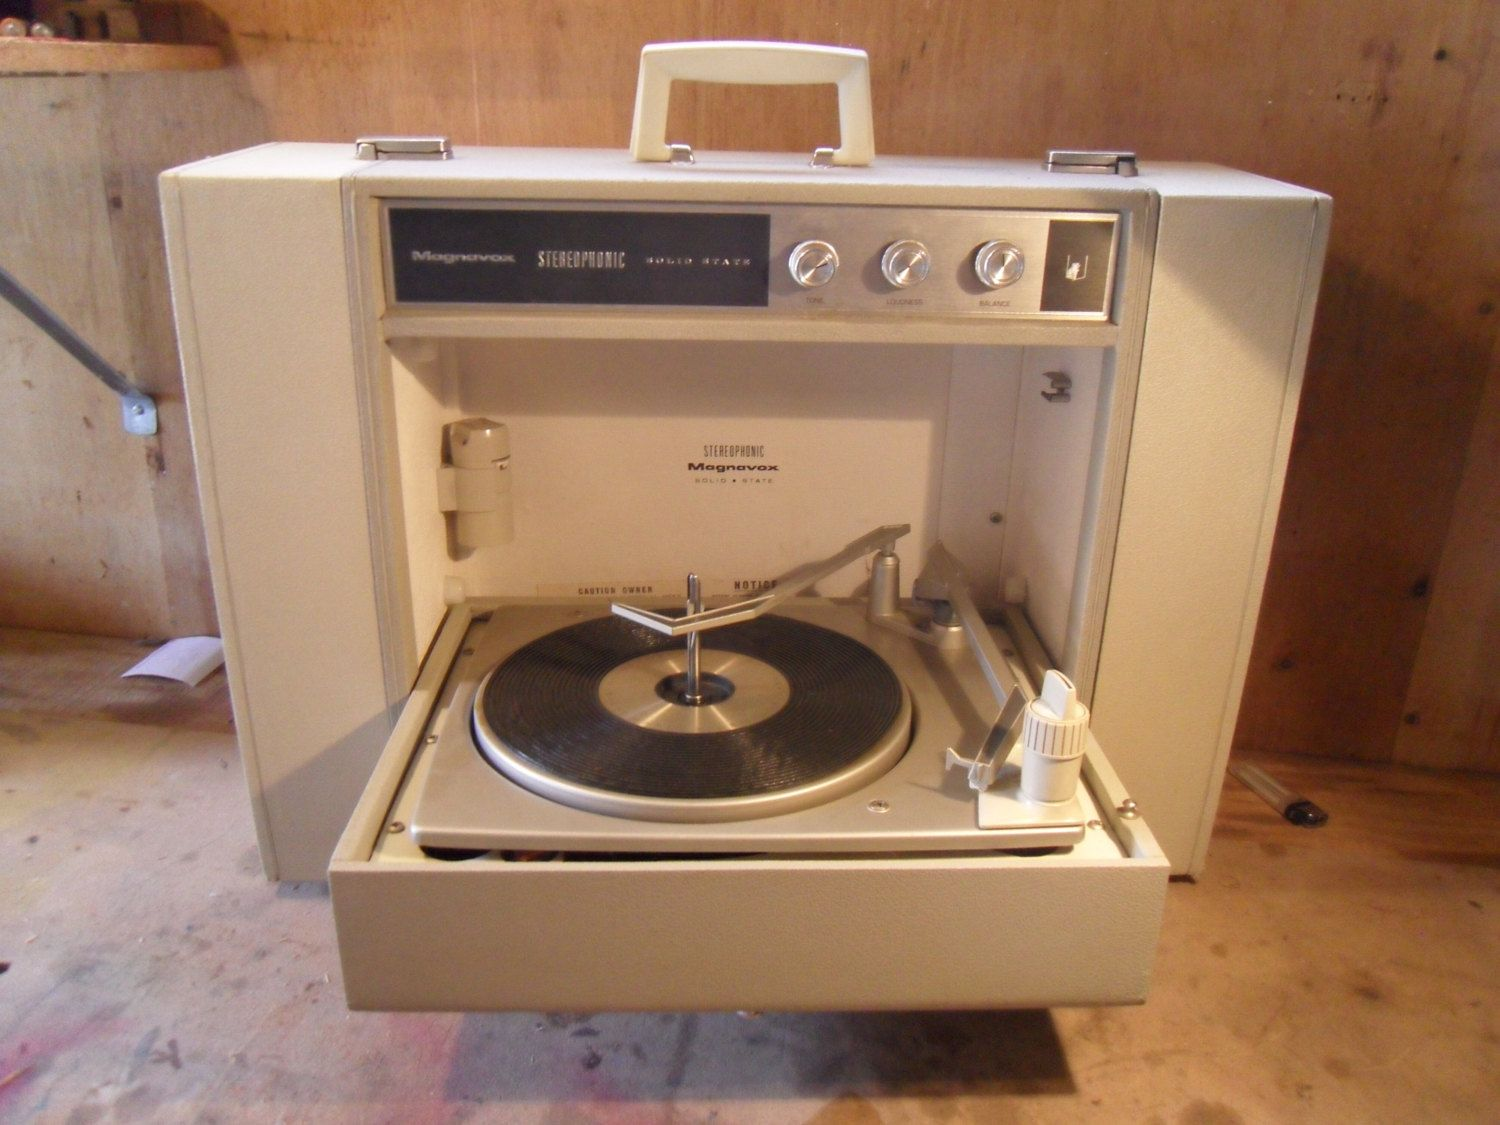 My Family Had A Portable Stereo Record Player Very Similar